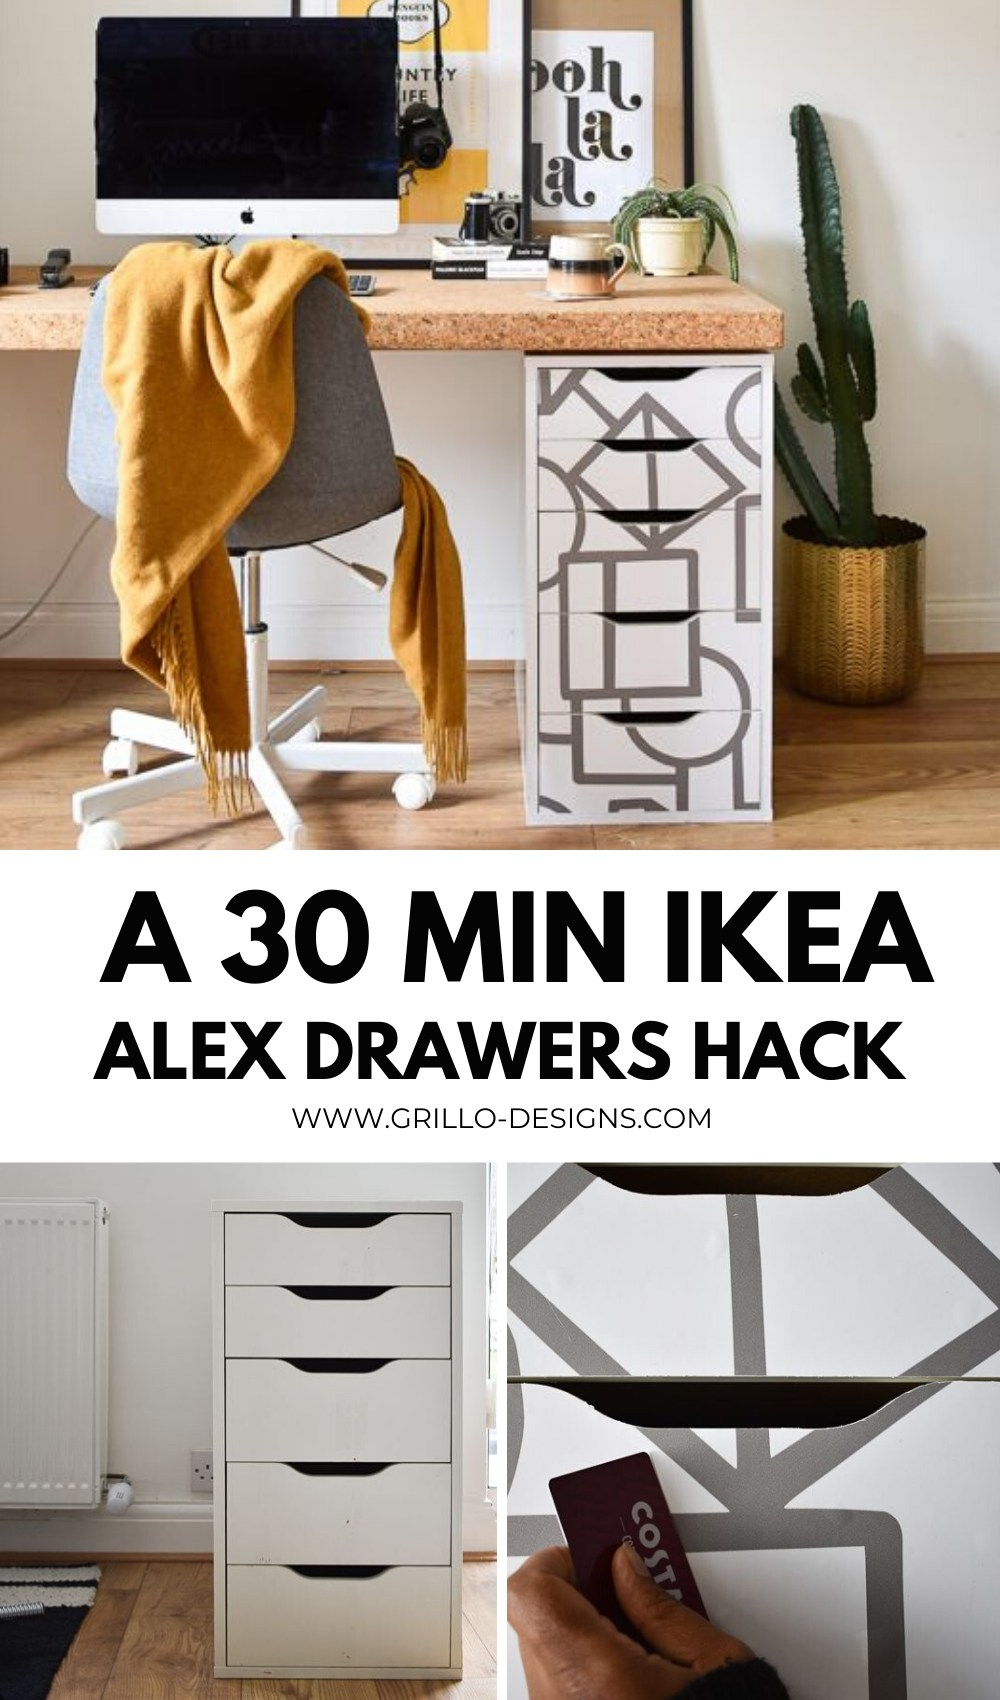 How to hack the ikea alex drAWERS PINTEREST GRAPHIC